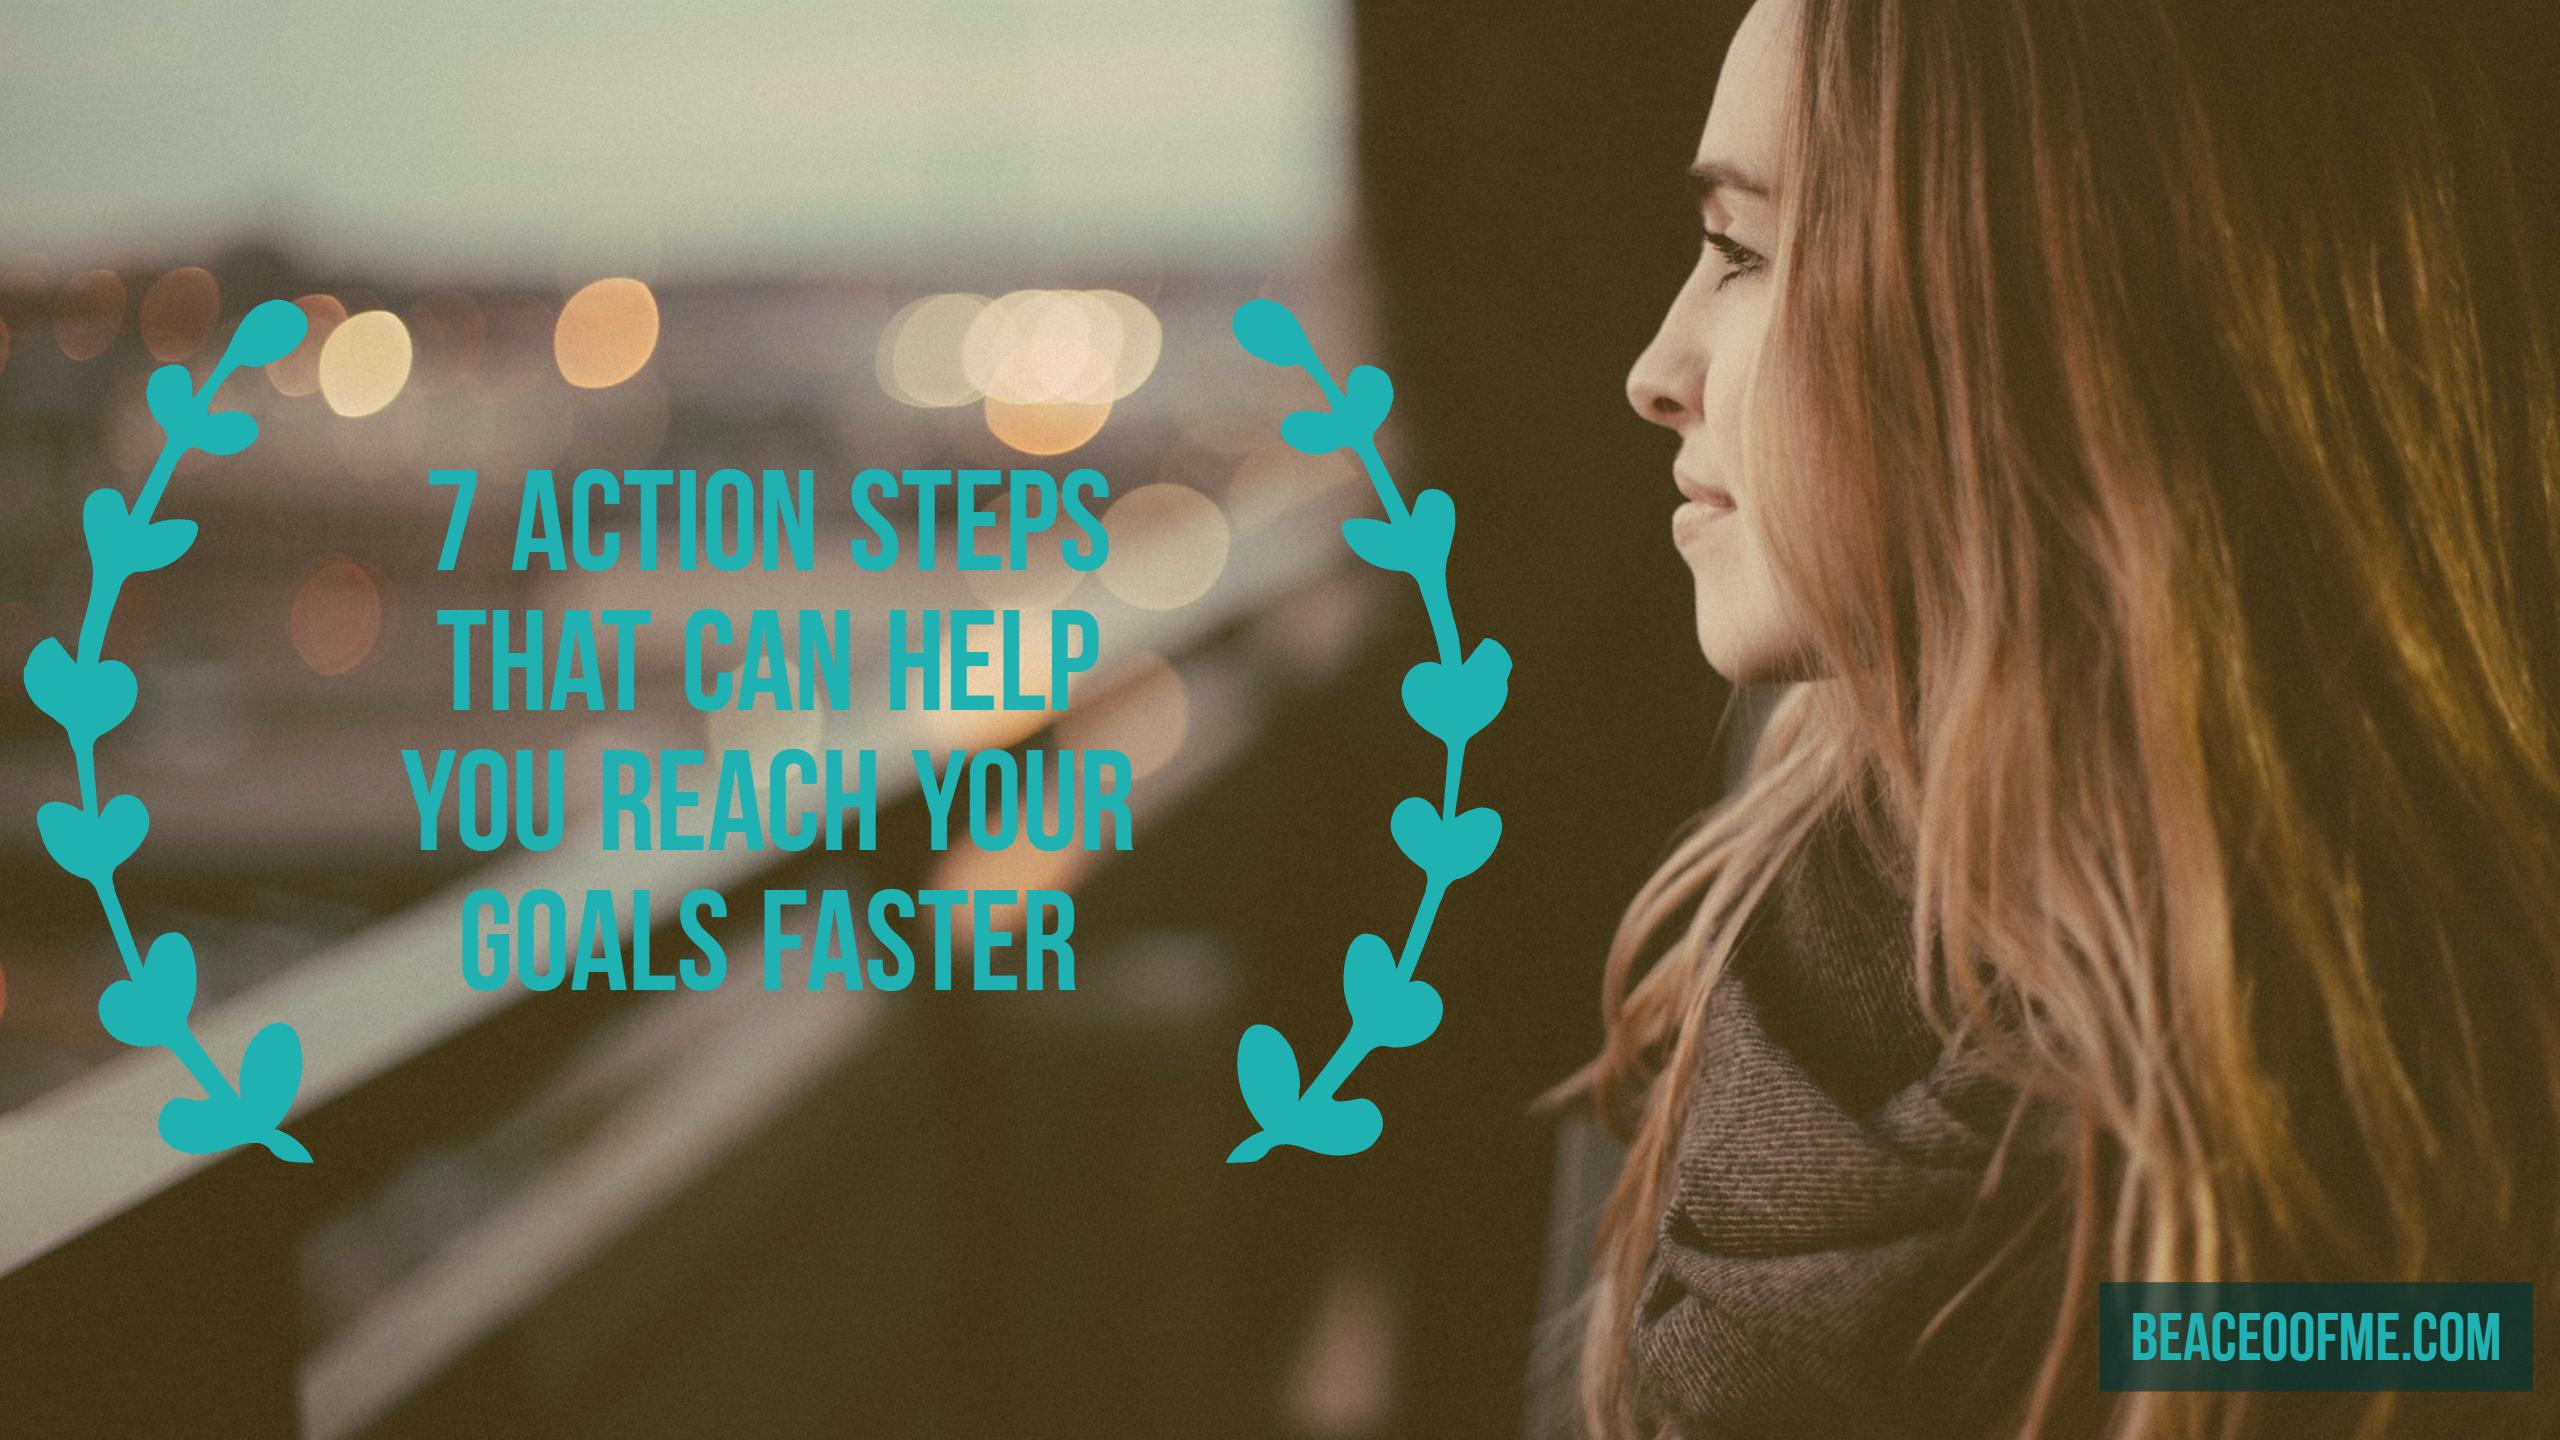 7 Action Steps that can help you Reach your Goals Faster